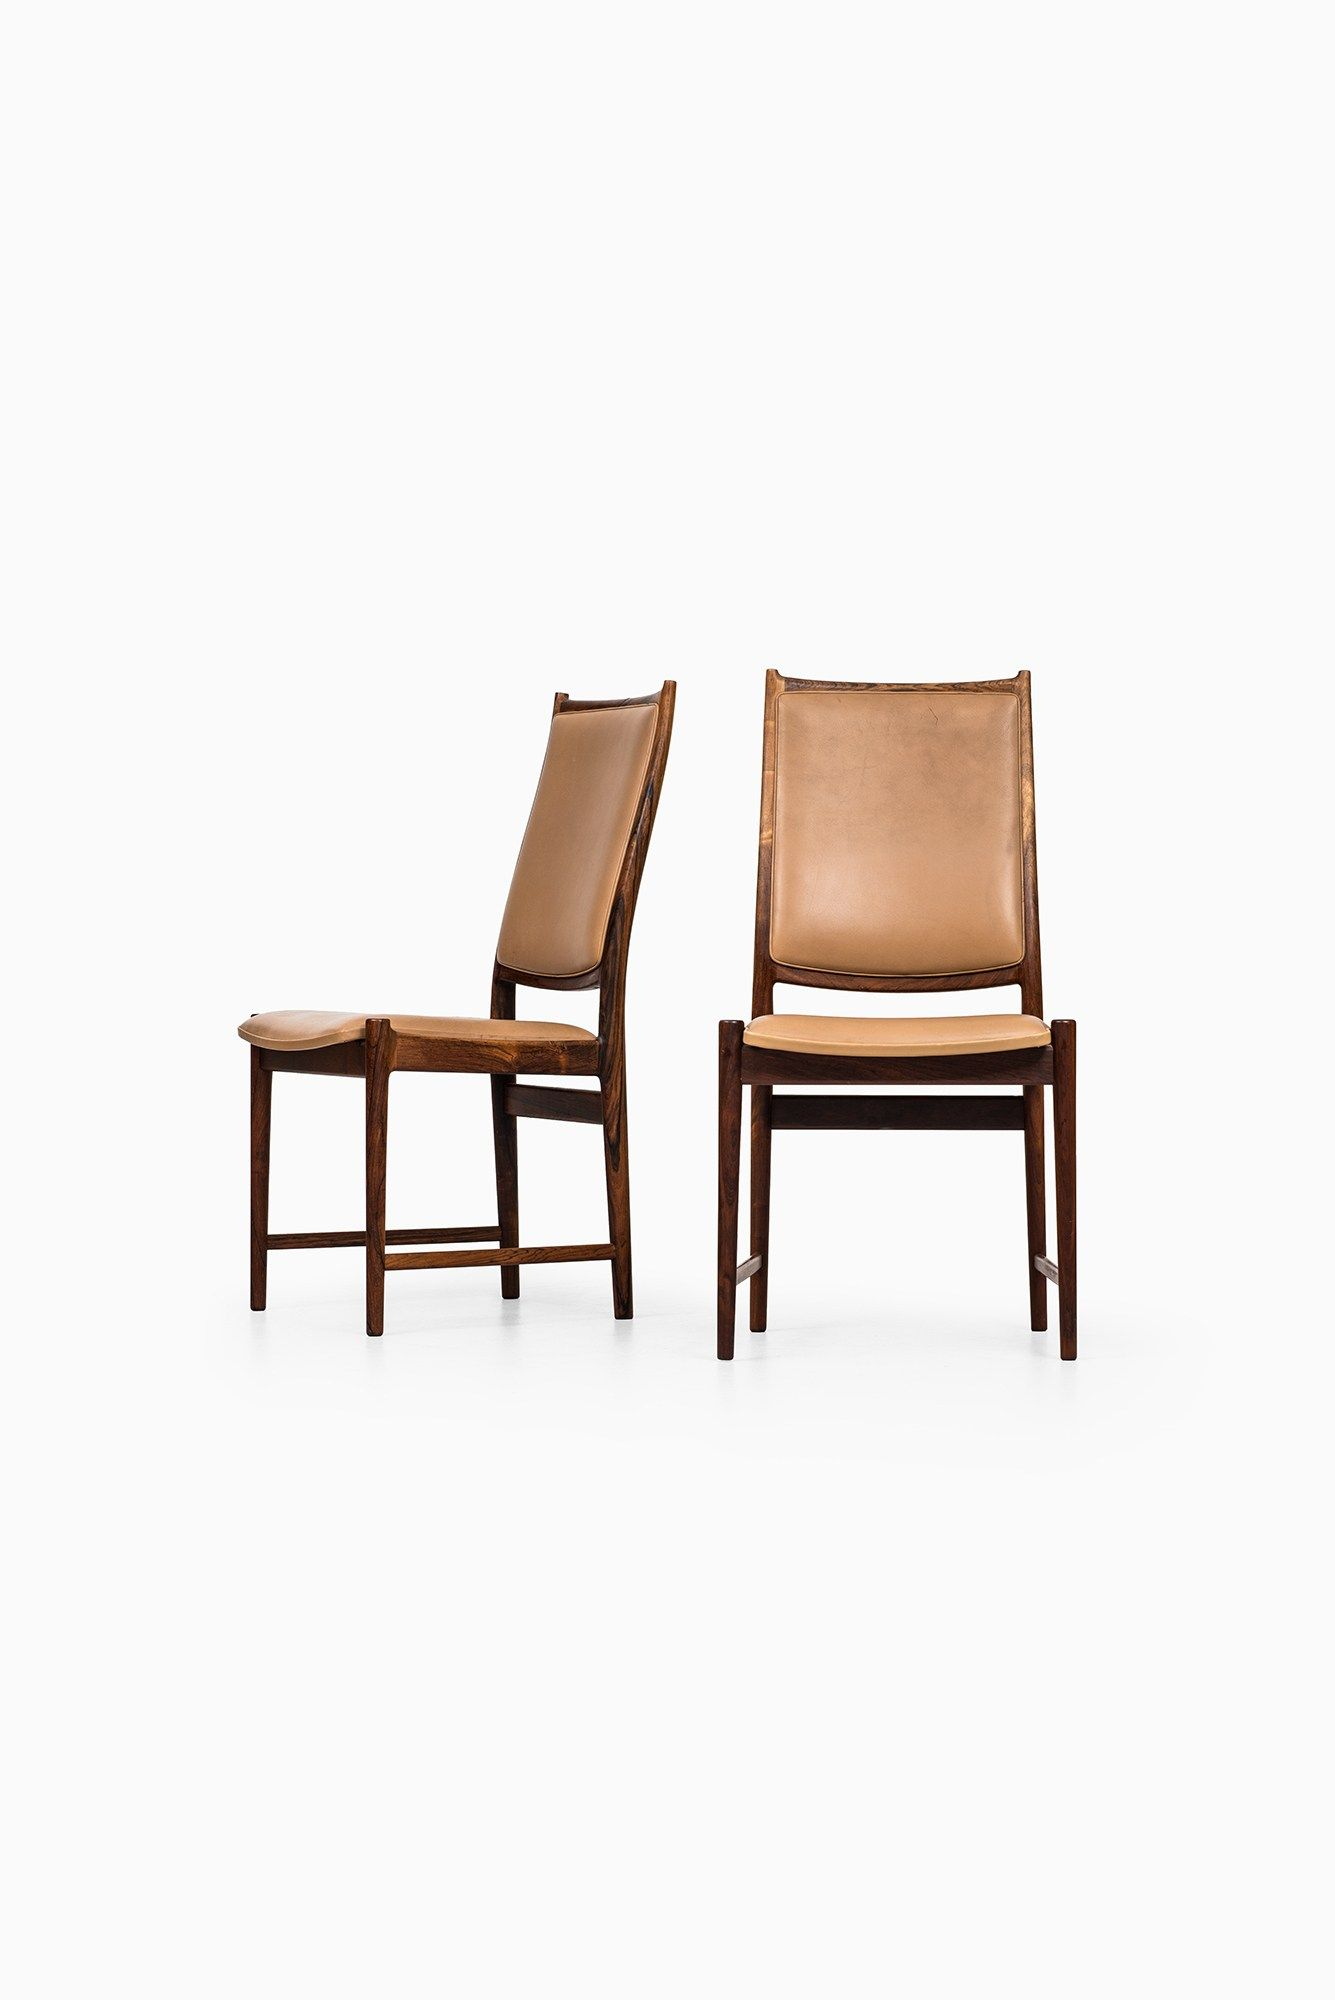 Torbjorn Afdal Dining Chairs Dining Chairs Chair Studio Chairs